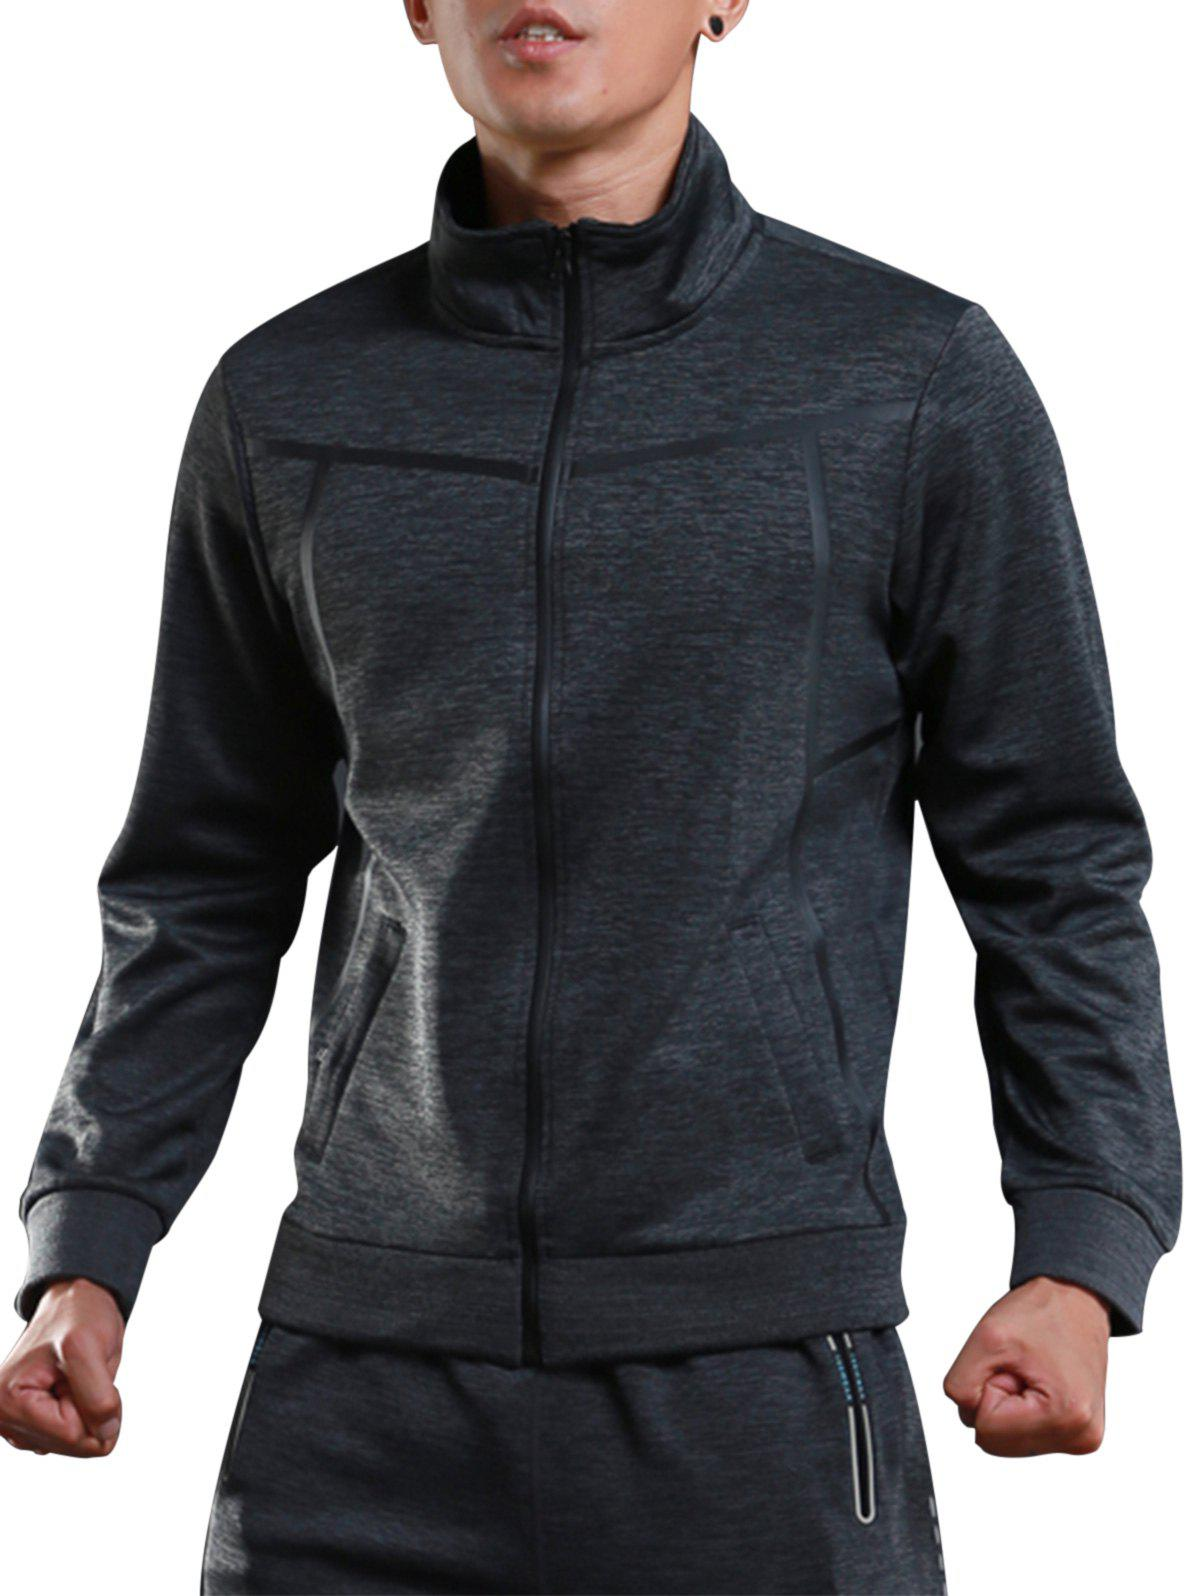 Buy Stand Collar Zip Up Sports Track Jacket